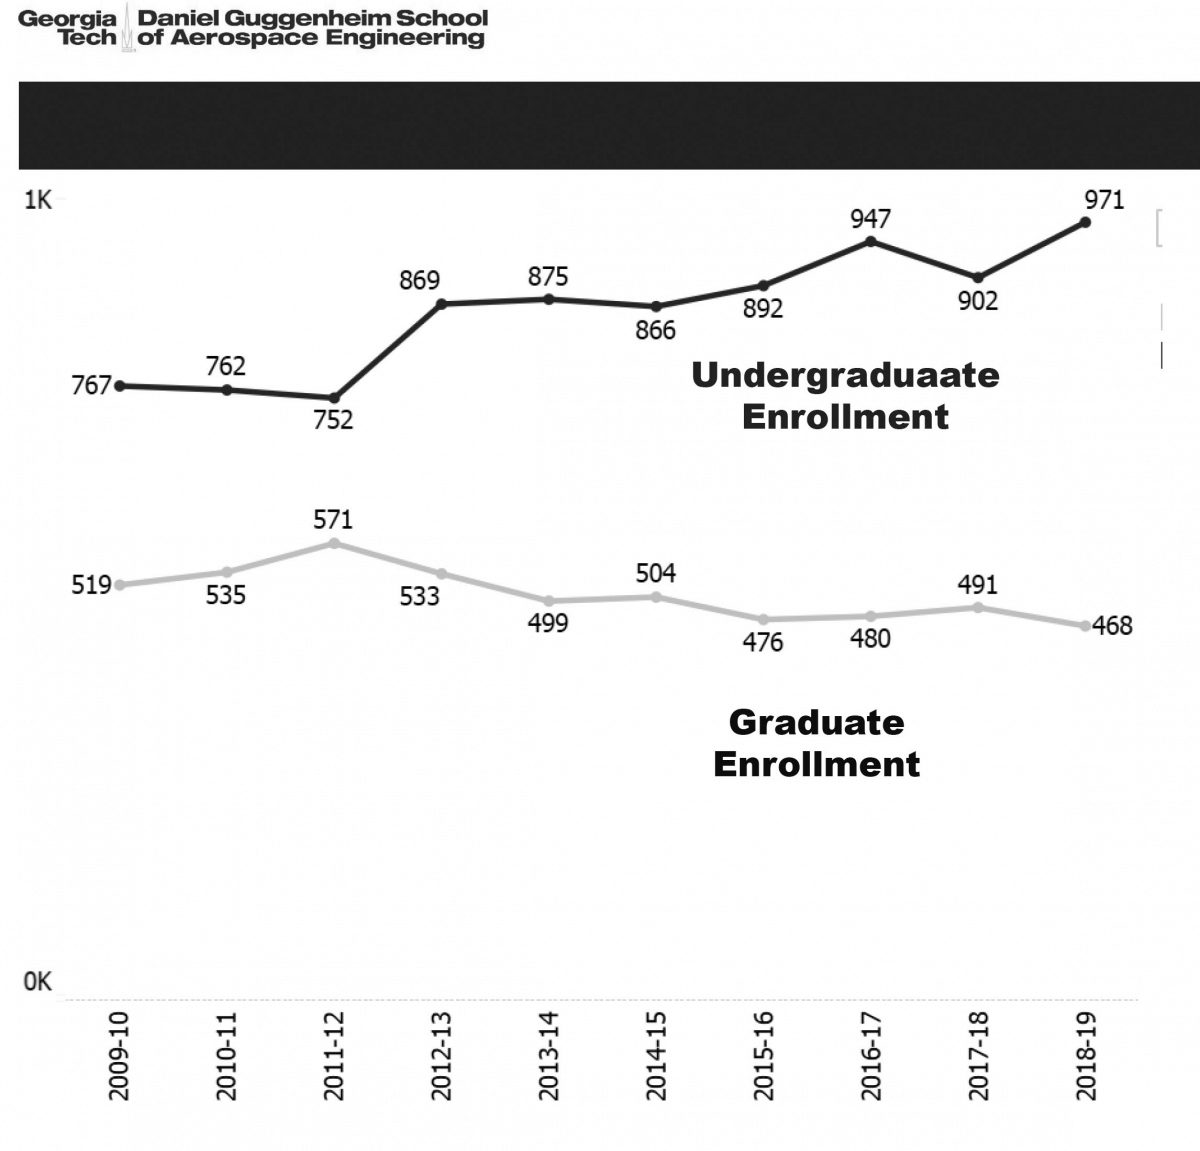 This chart represents undergrad and grad enrollments from AY 2009-2010 to AY 2018-2019